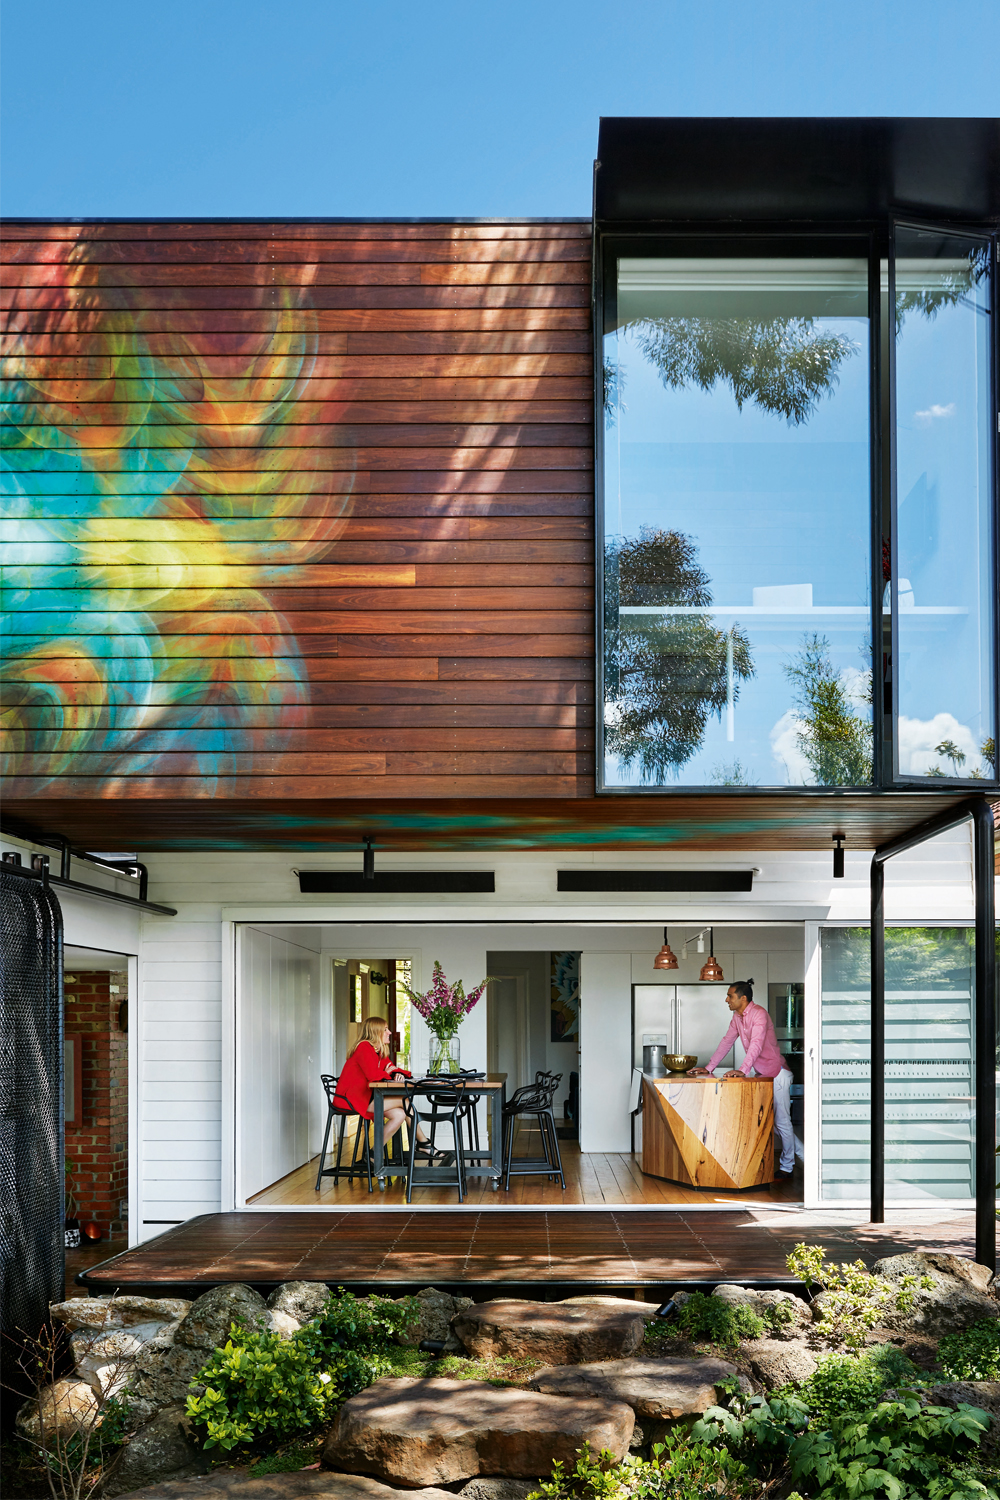 Give your Home the WOW Factor